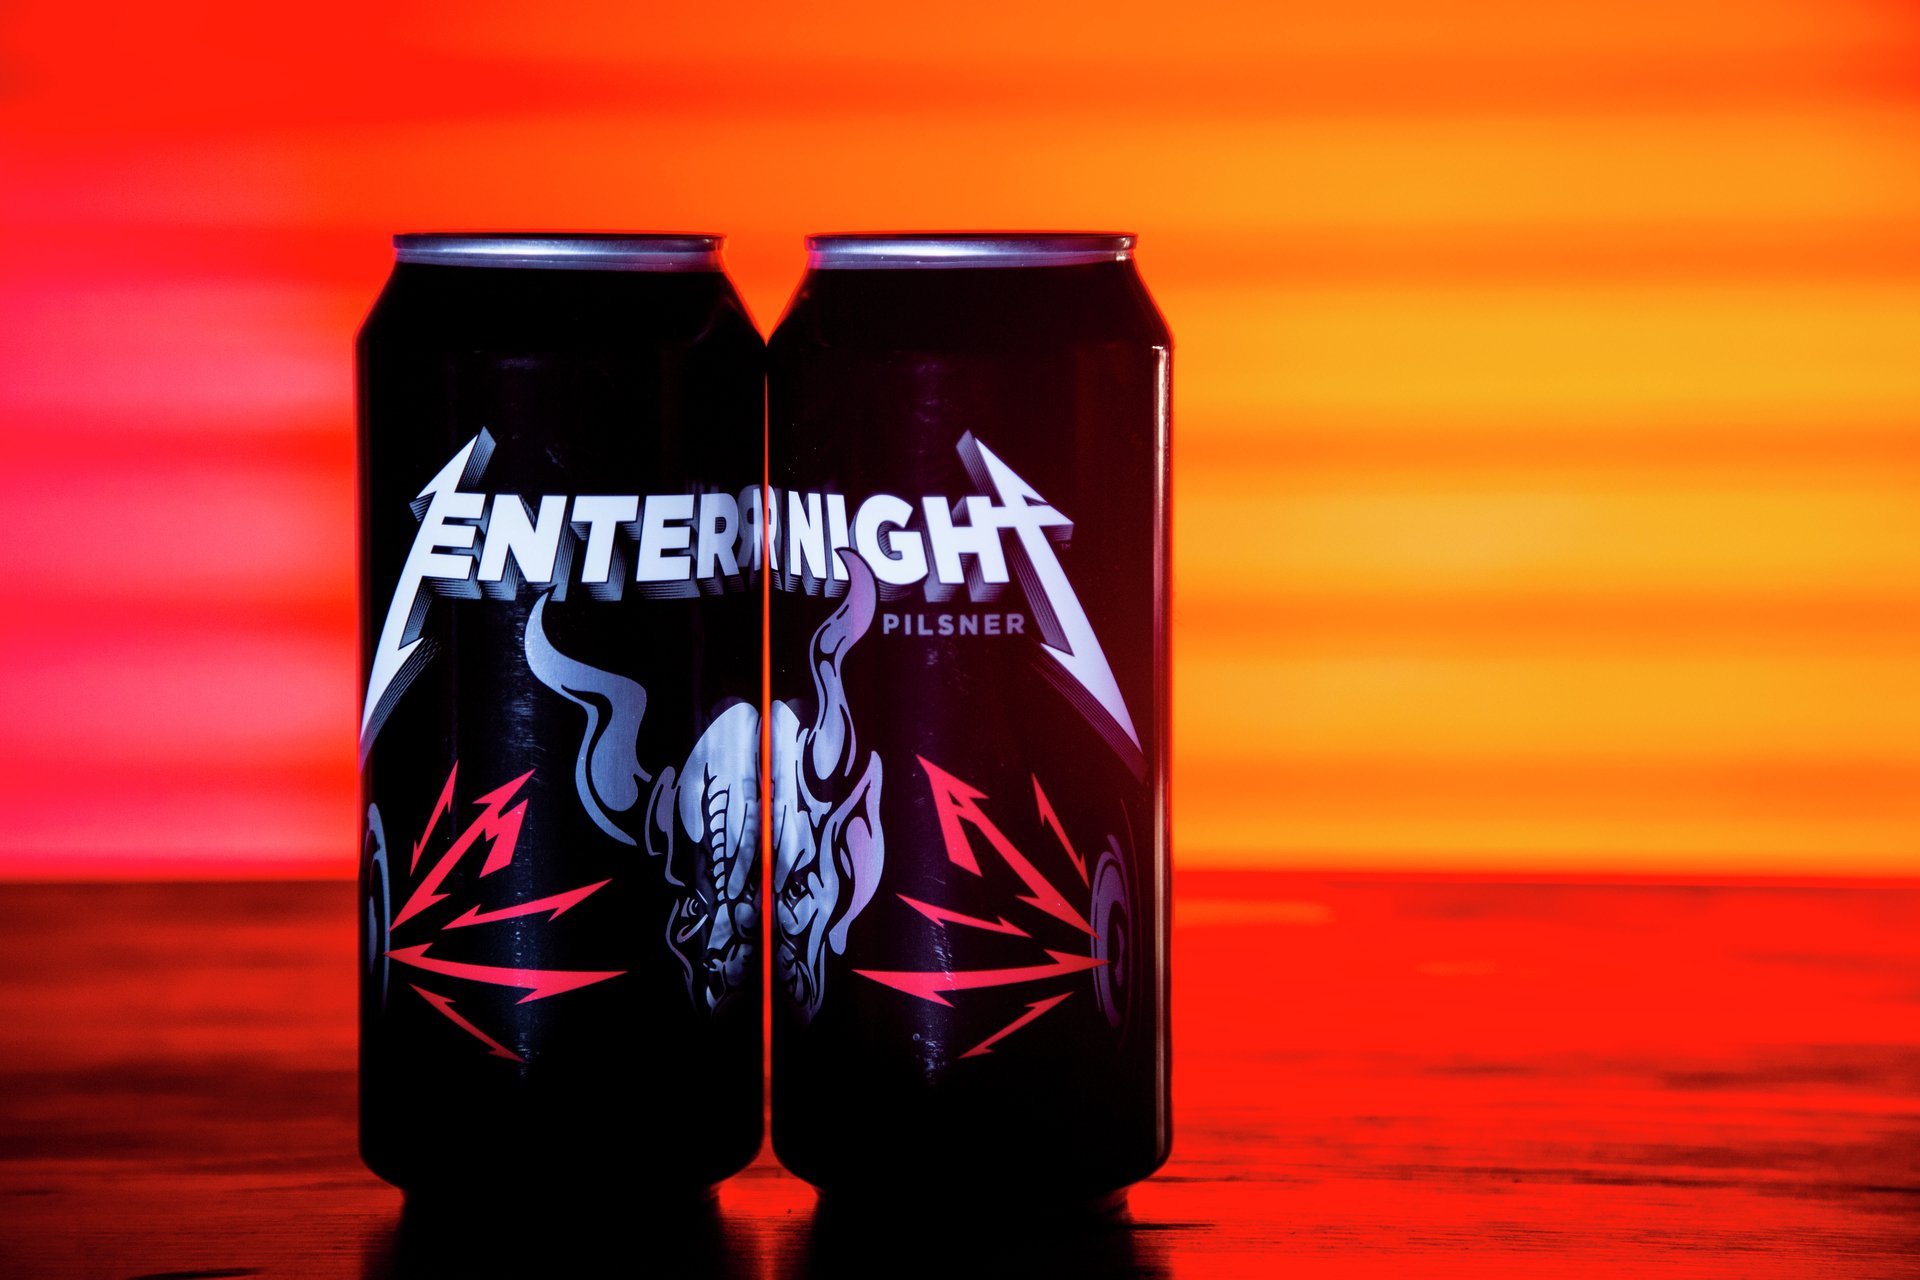 Two-cans-Enter-Night-Pilsner_Studio-1920x1280.jpg